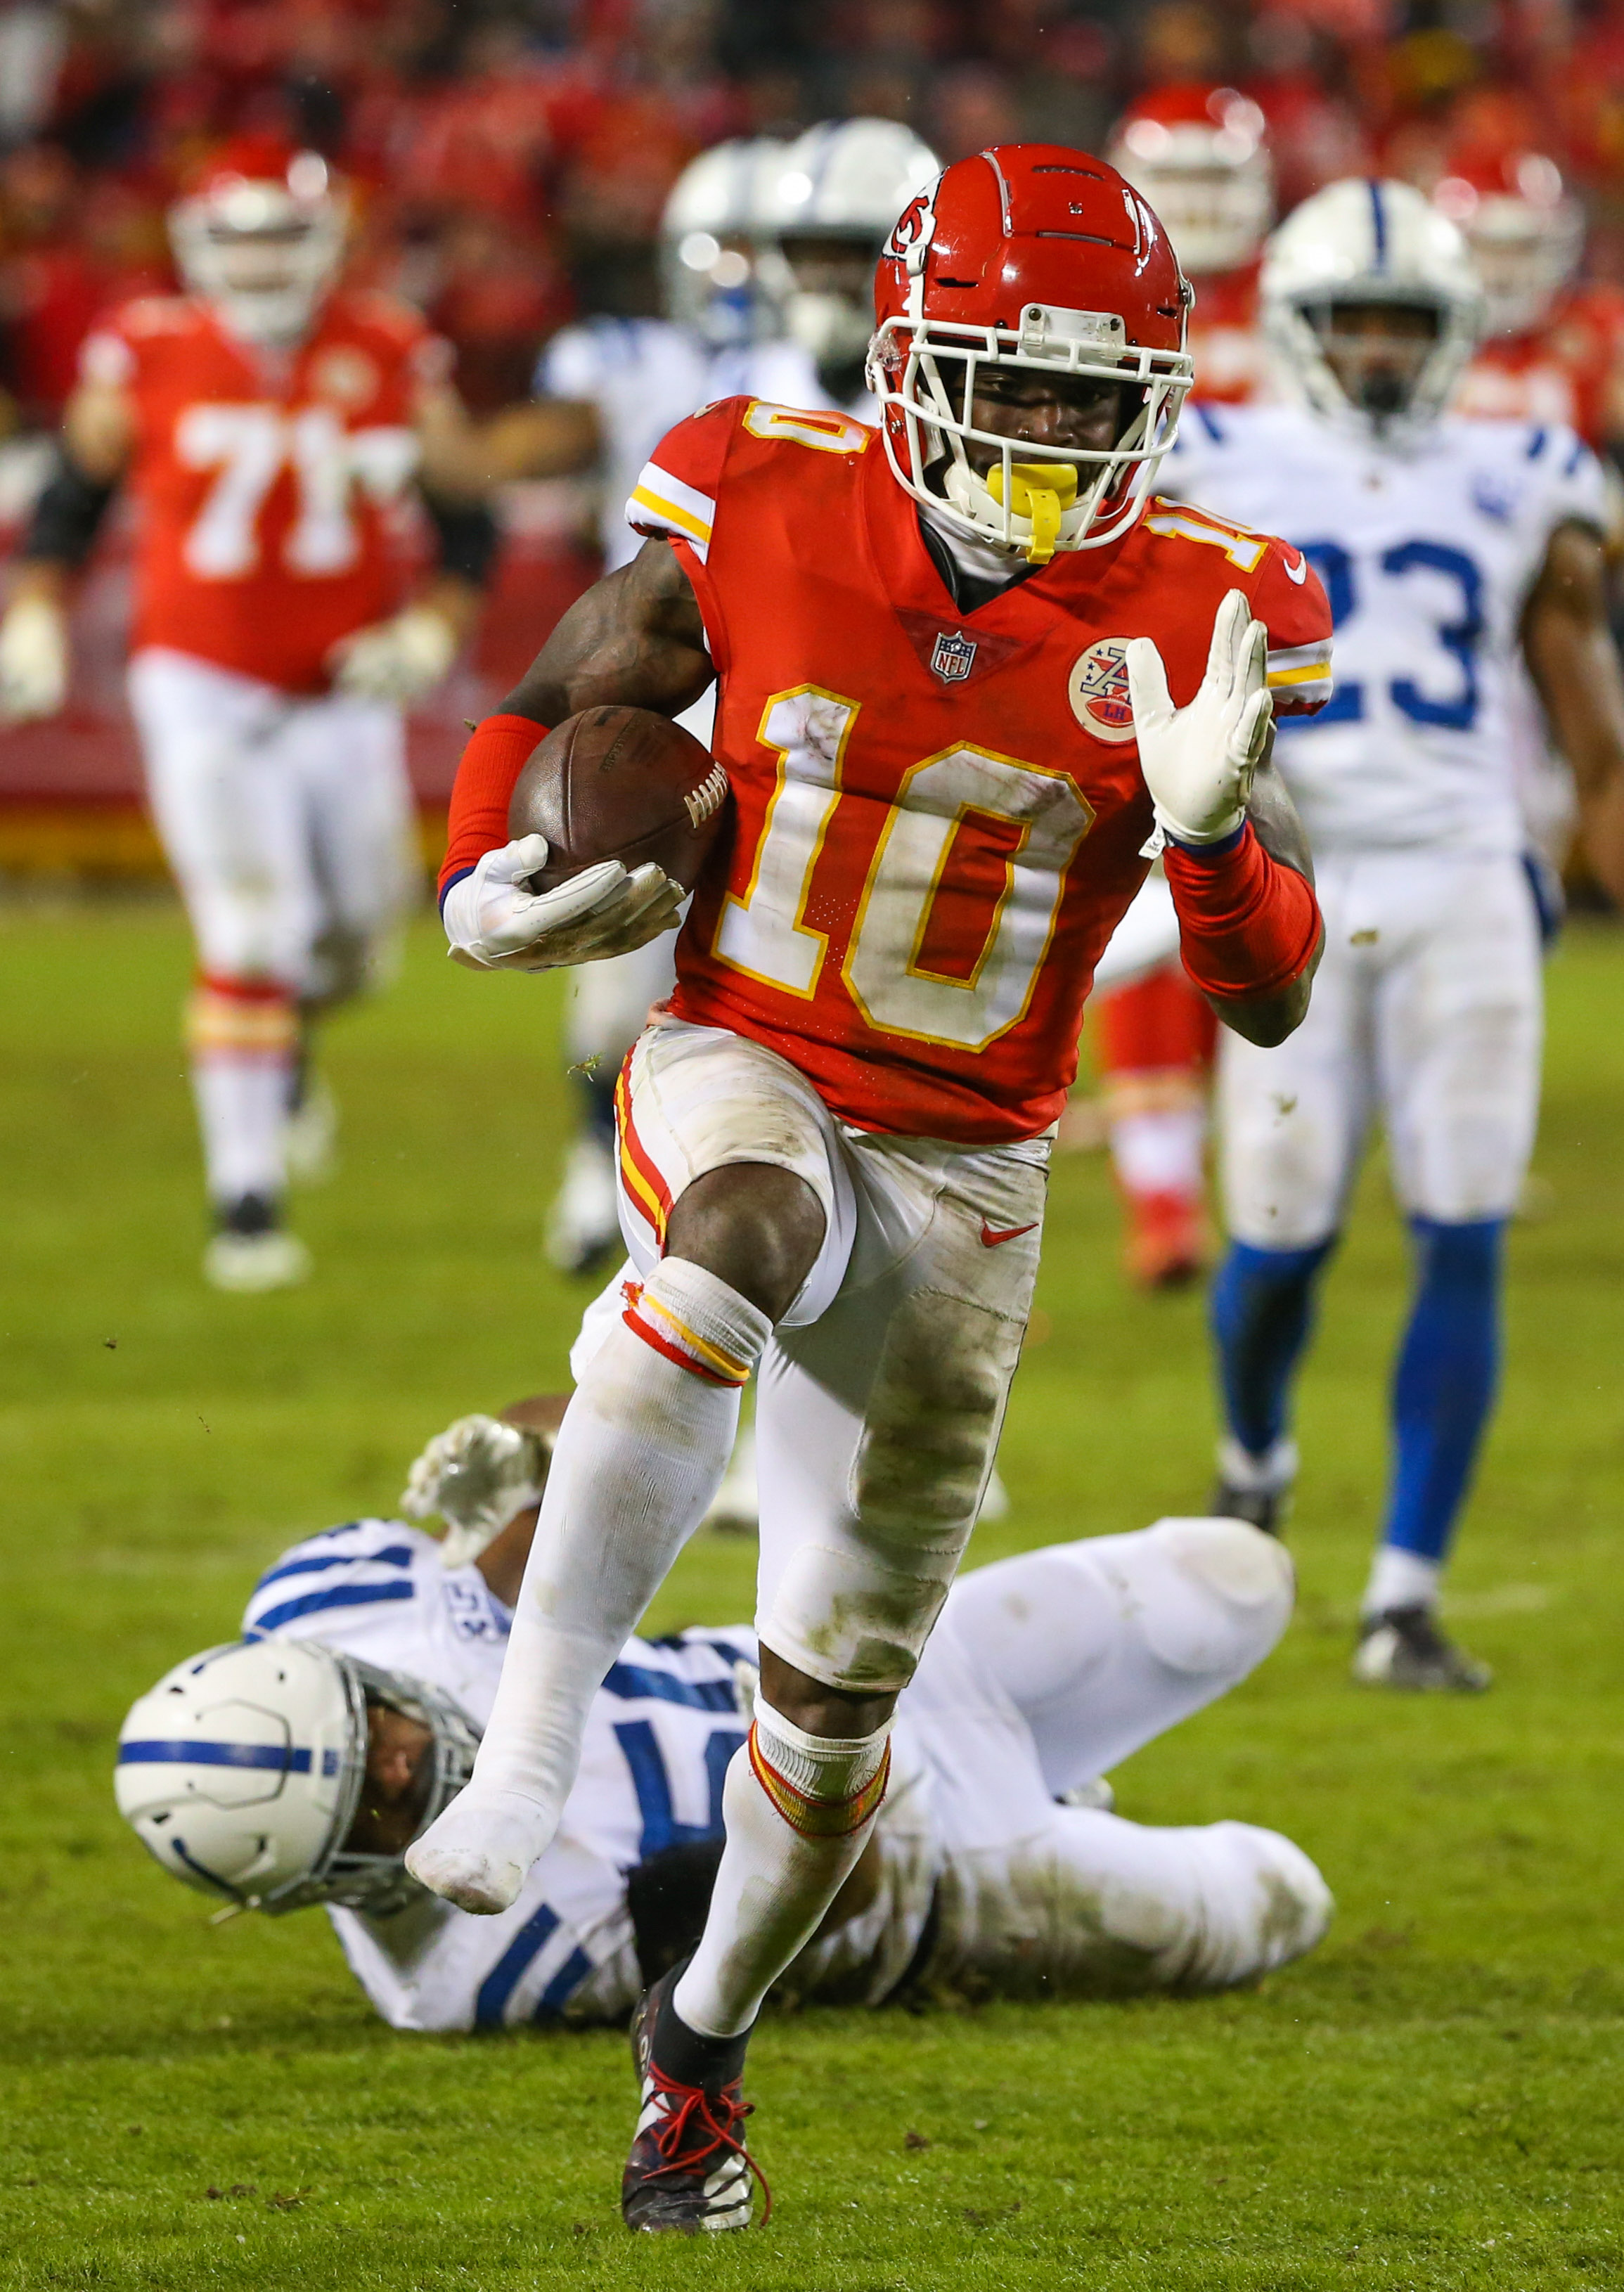 088b354ad7b The top candidate to dethrone them last year may again fill that role, but  the Chiefs have gone through a rather complex offseason.